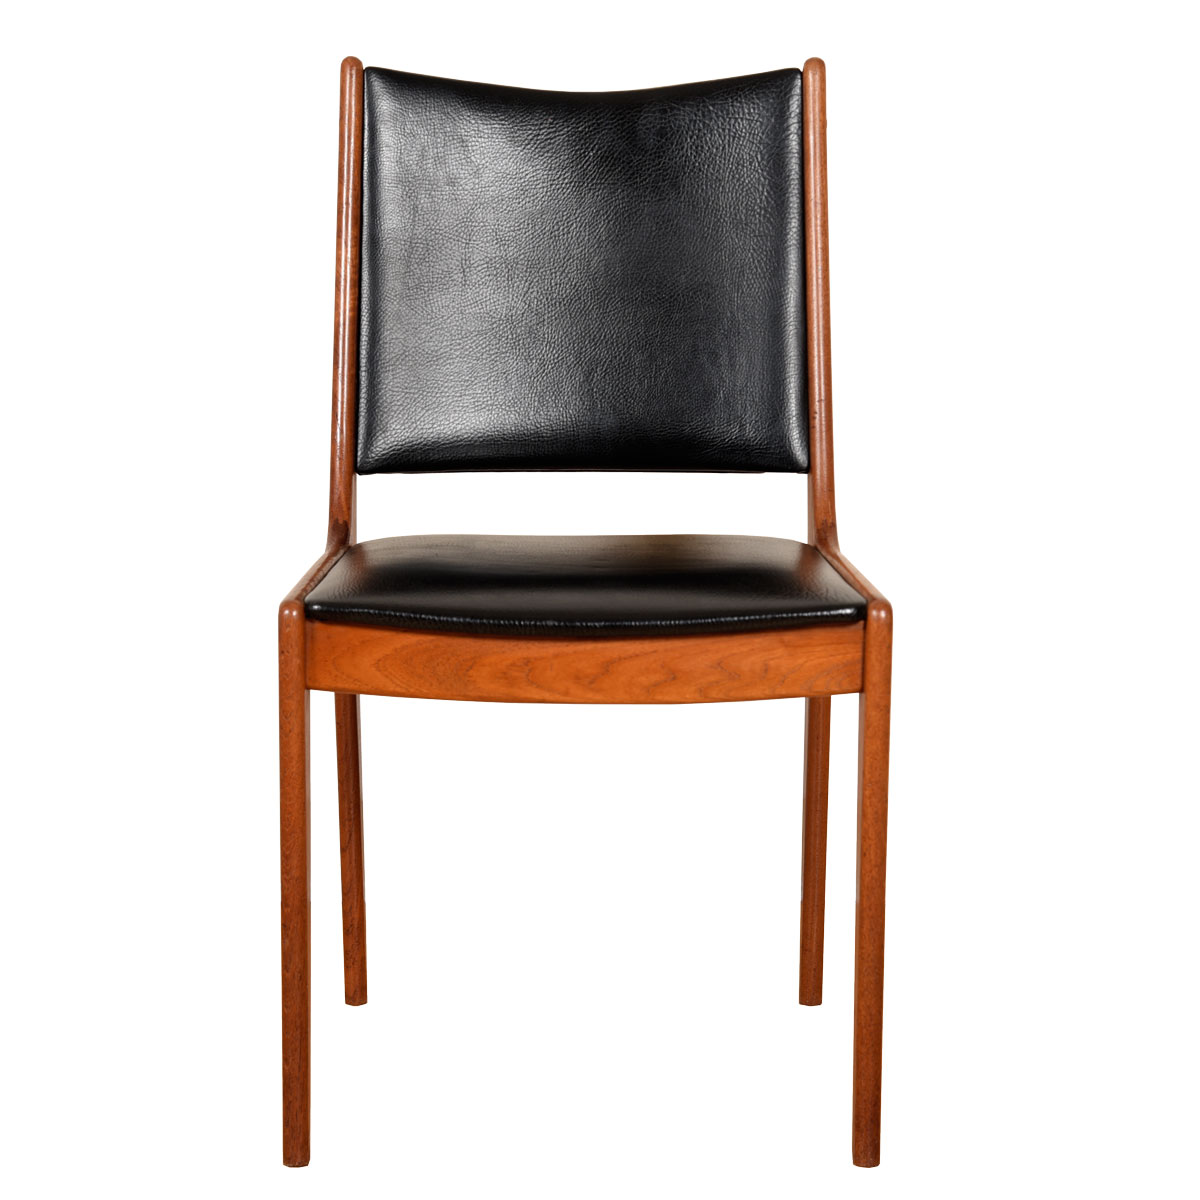 Set of 4 Johannes Andersen Danish Teak Dining Chairs for Uldum Mobelfabrik